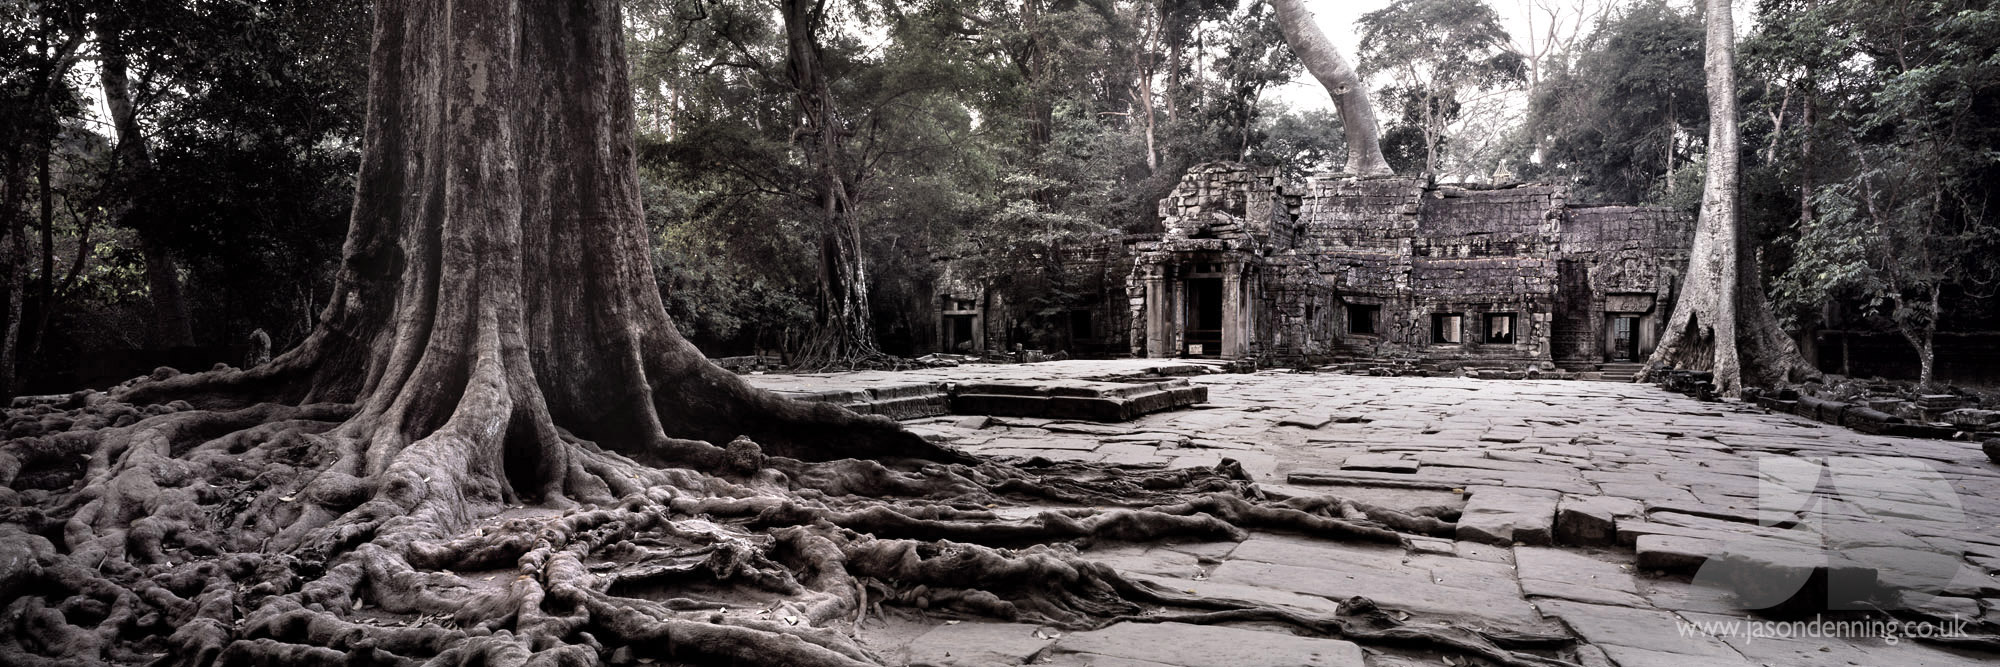 SIEM REAP TA PROHM ENTRANCE